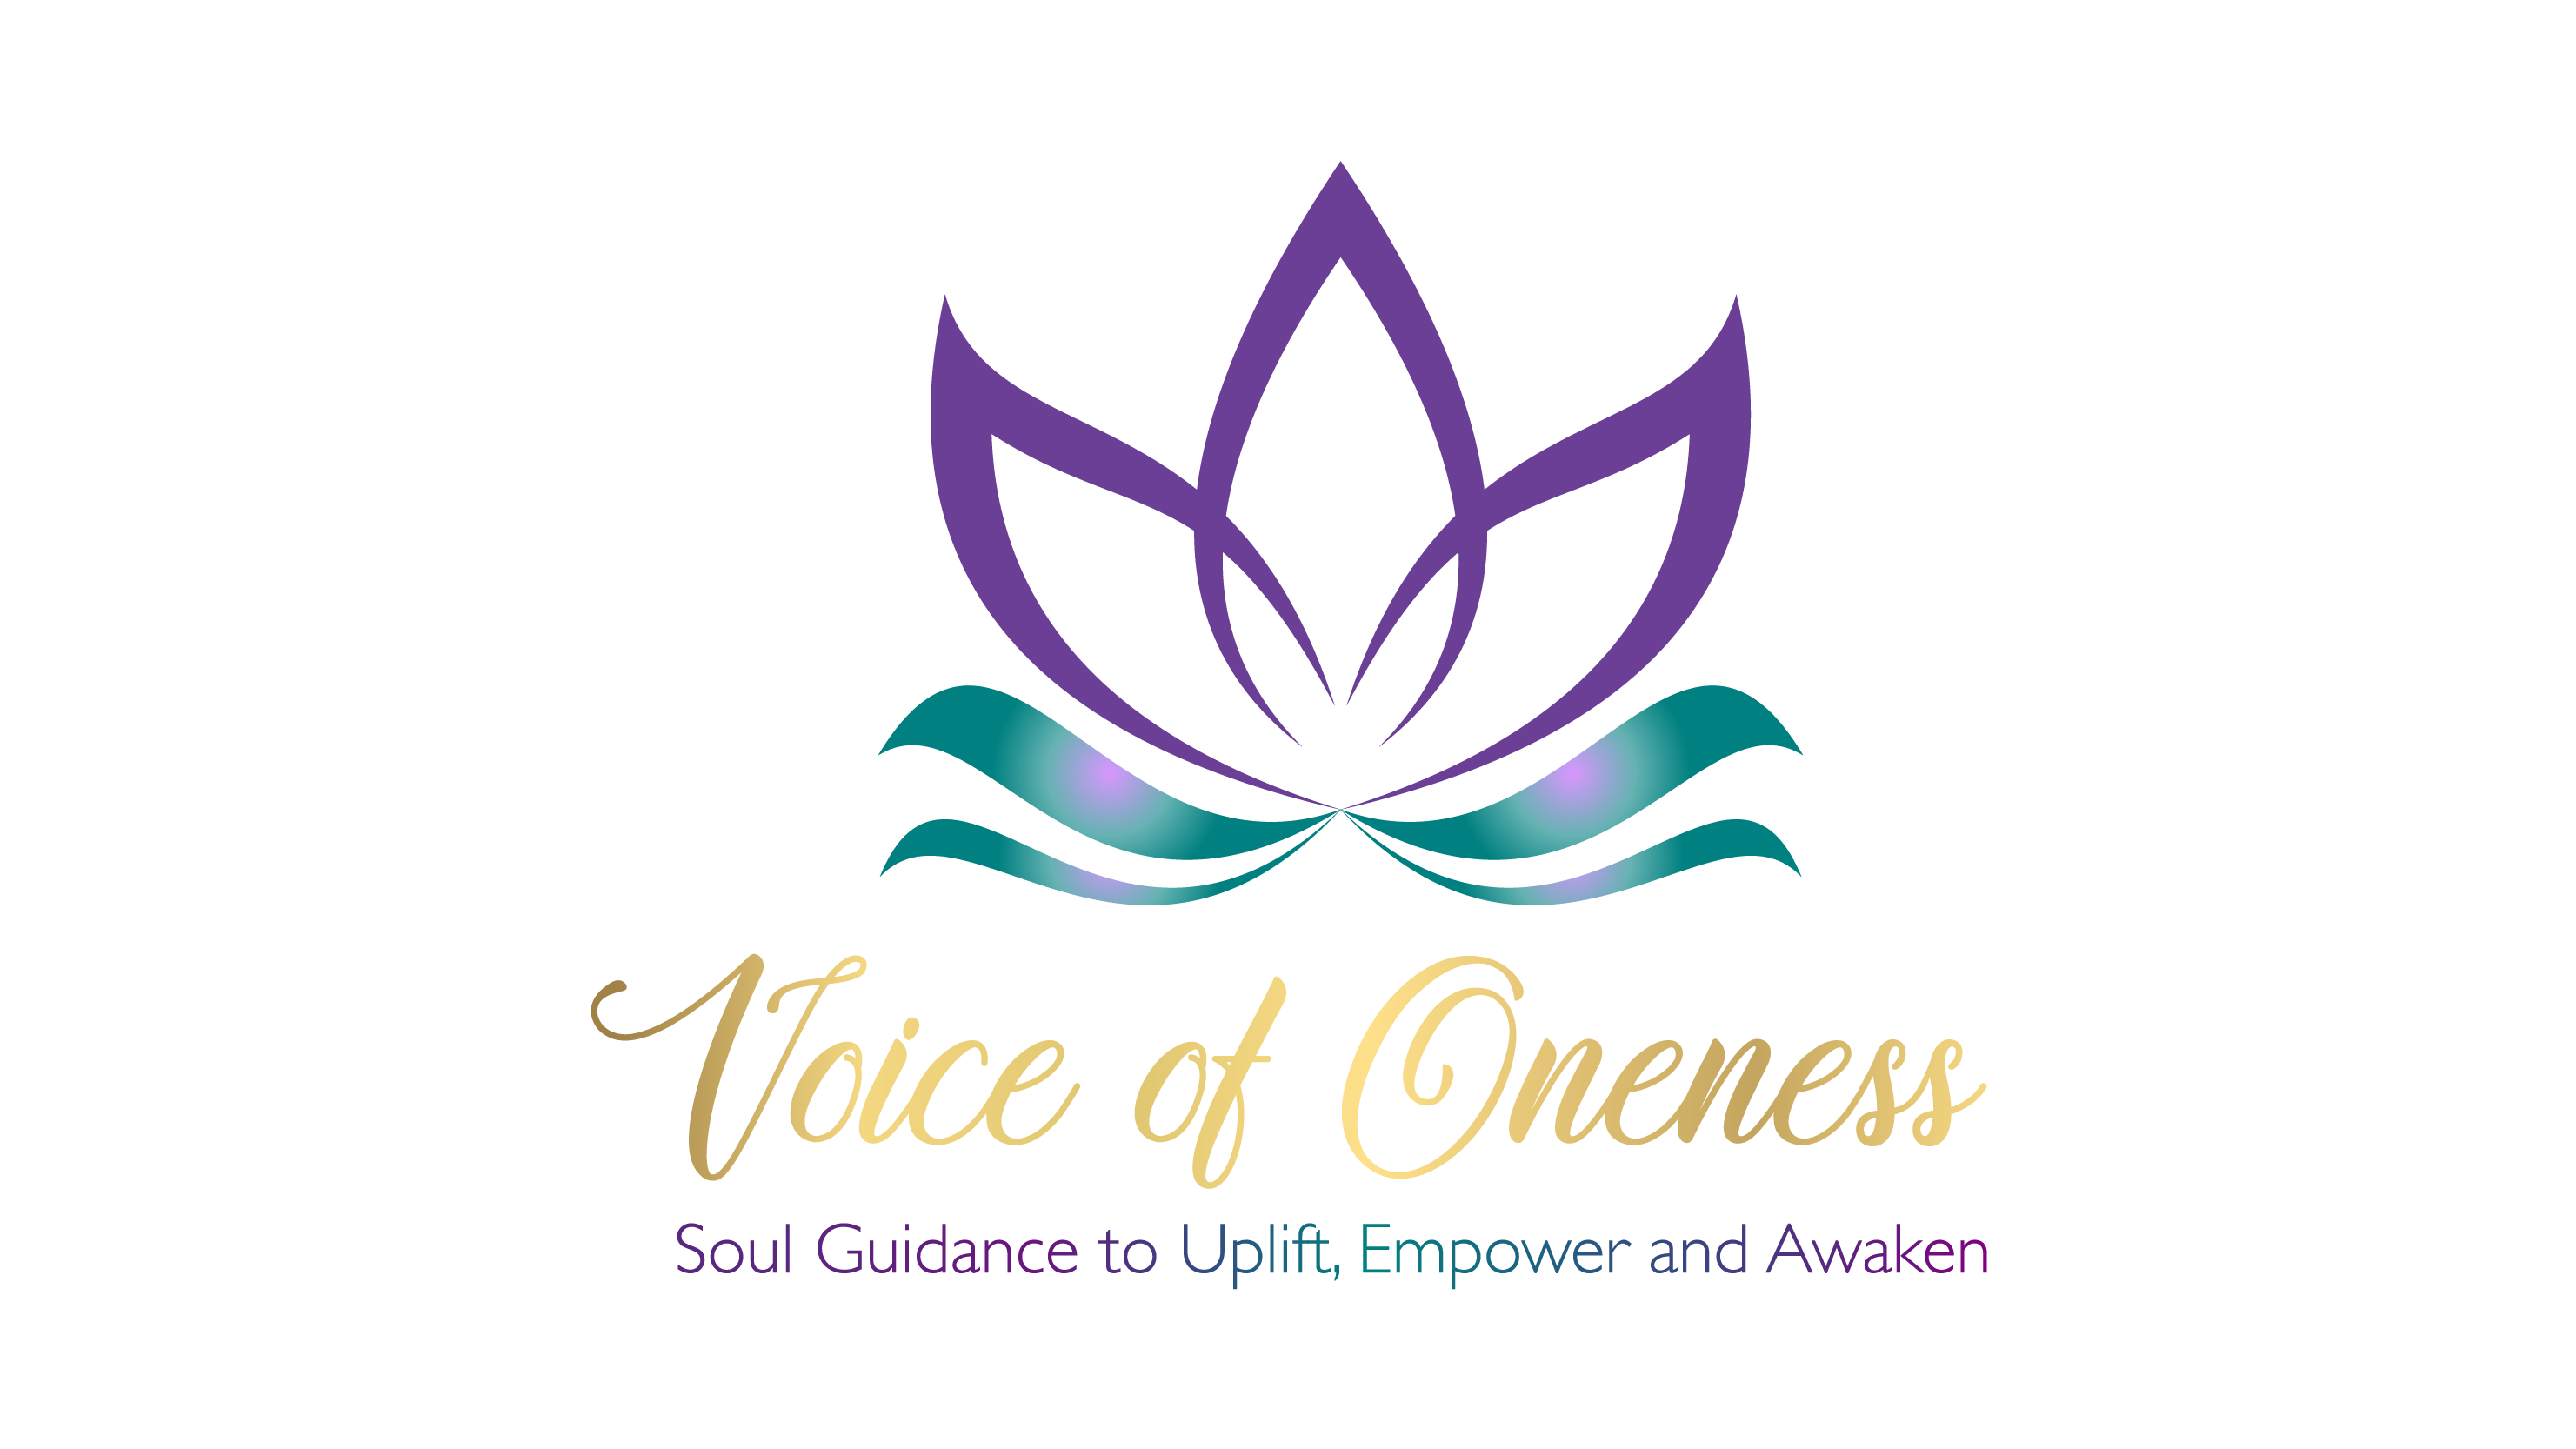 Voice of Oneness Metaphysical Teachings Group